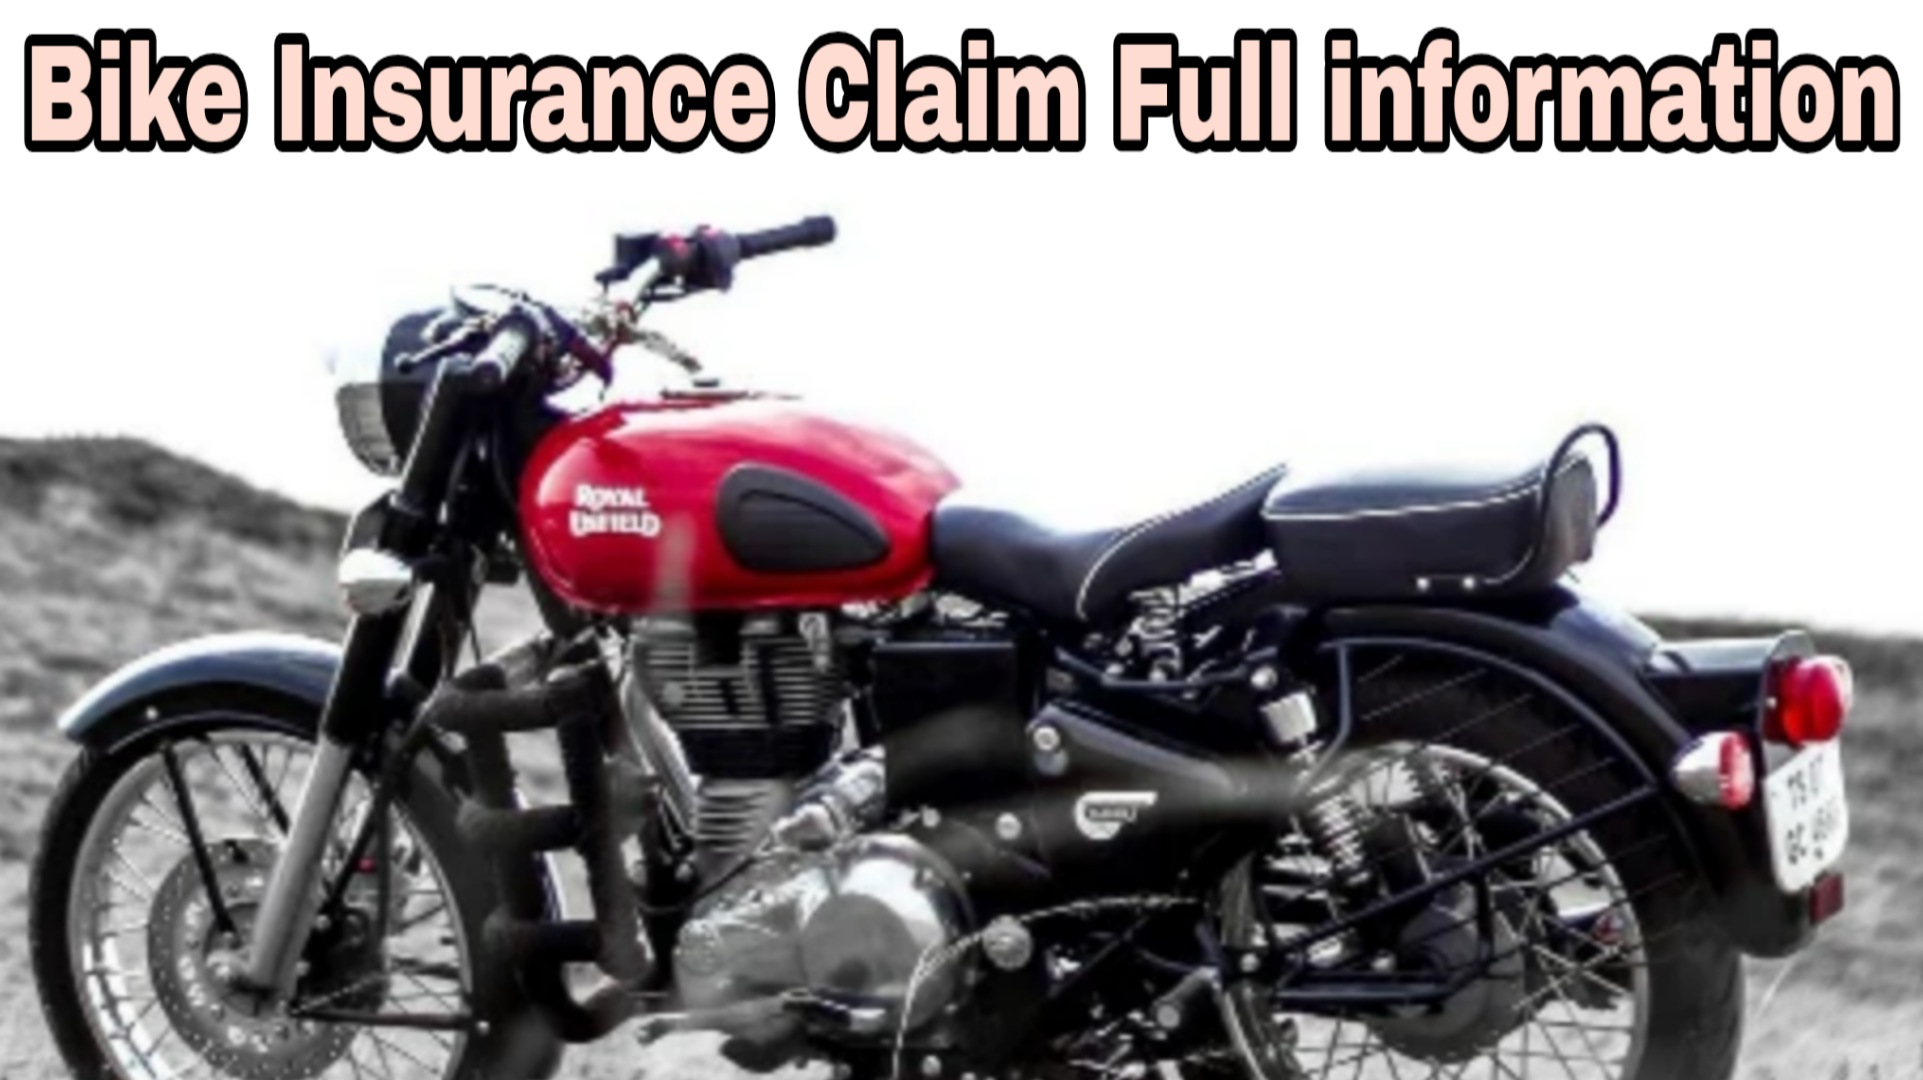 Motorcycle Insurance Claim full Information In Hindi 2020 ...